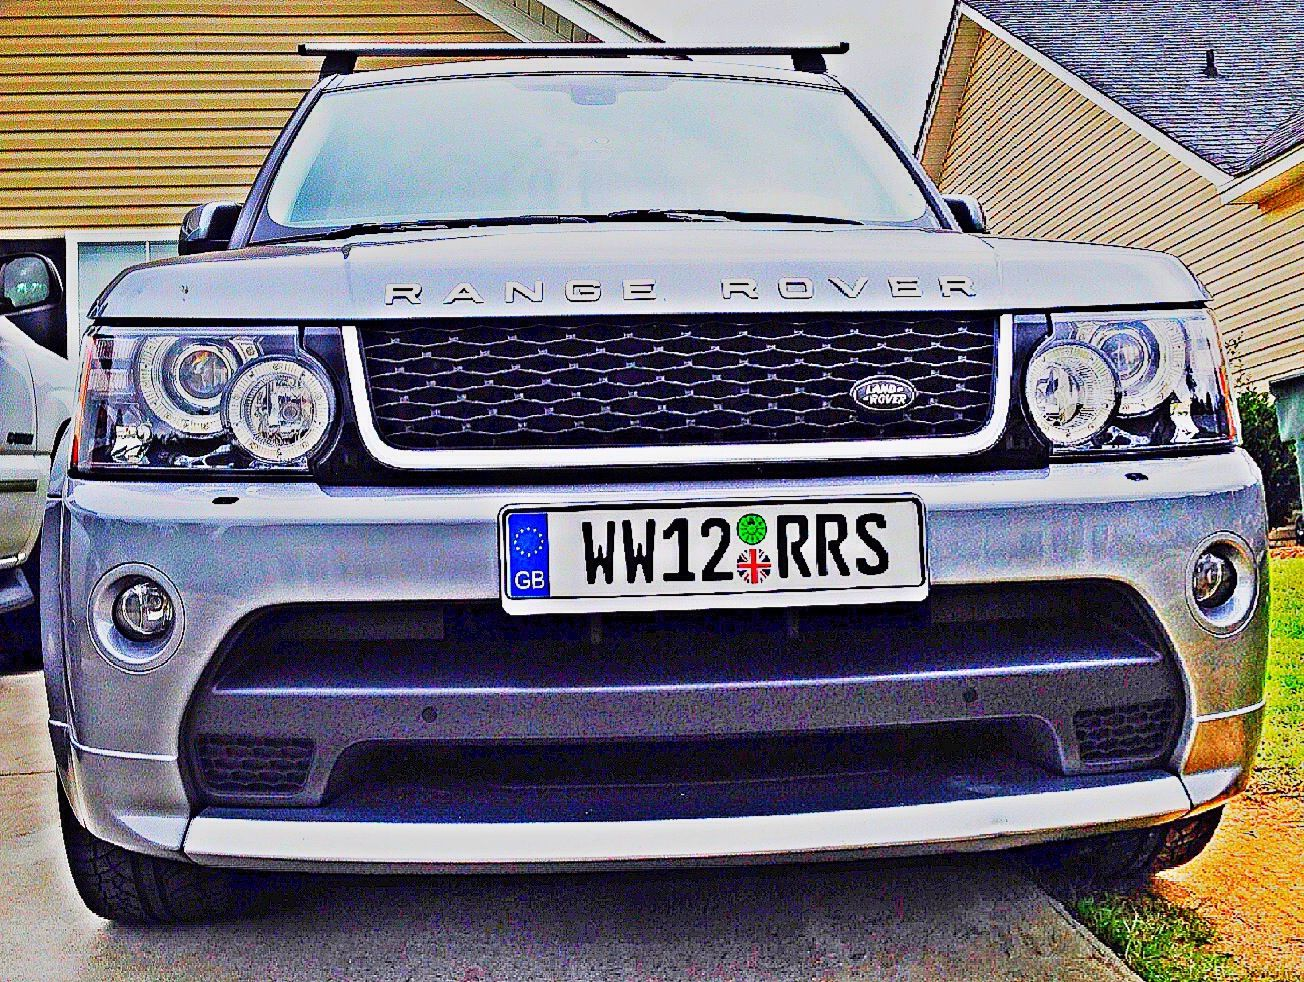 Great Britain Eu Style License Plate Cars With Custom